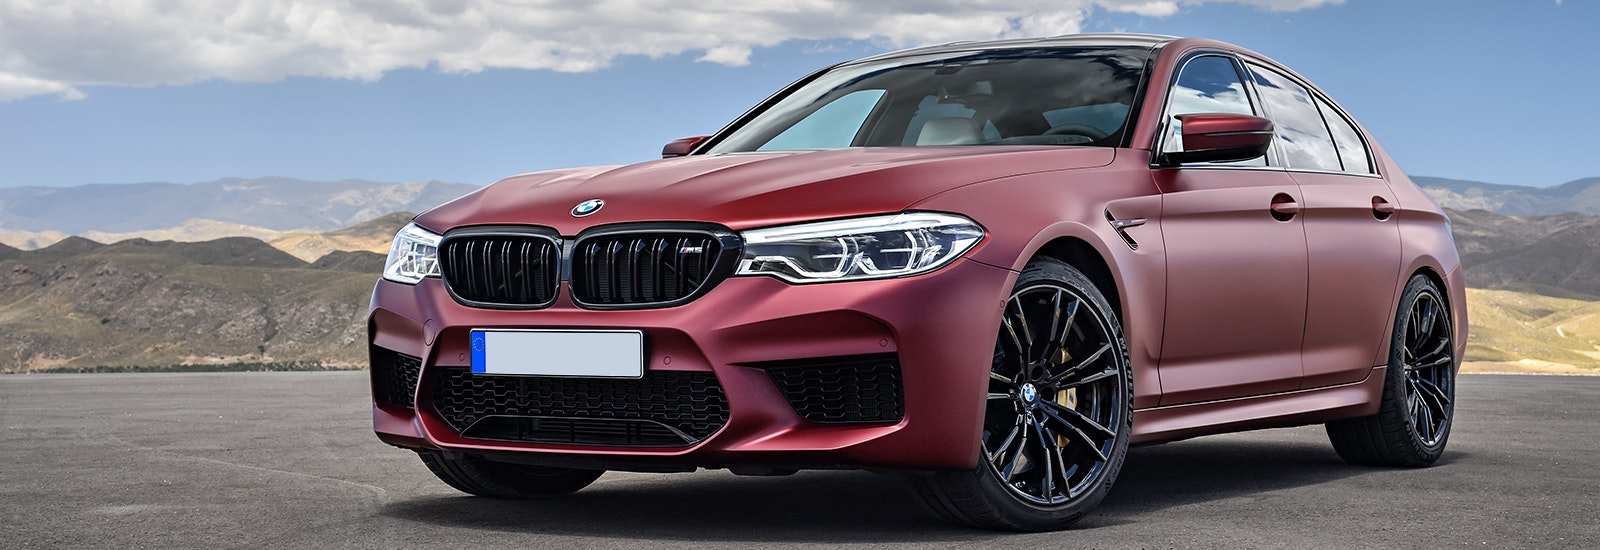 Bmw 1 Series New Model Release Date >> 2018 BMW M5 price, specs and release date | carwow